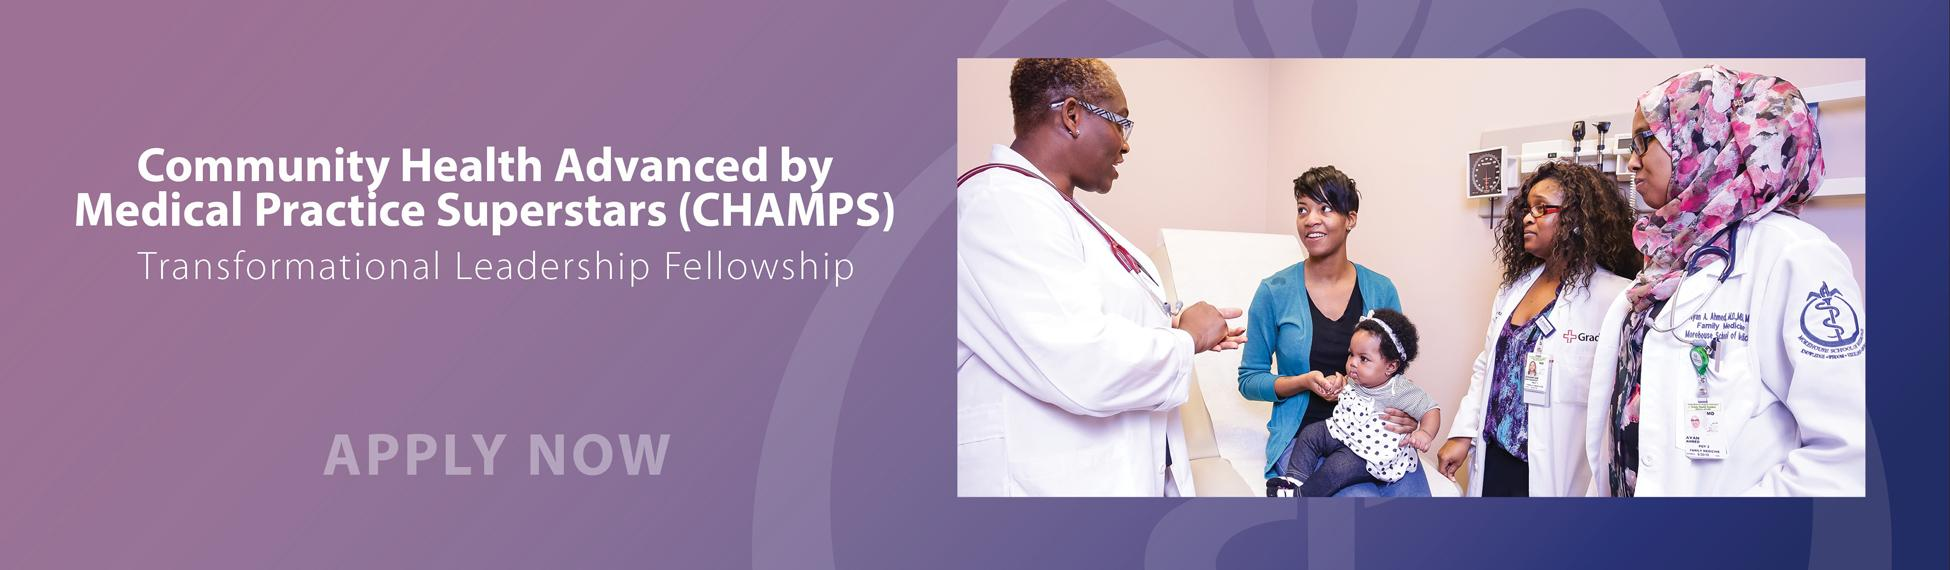 CHAMPS Transformational Leadership Fellowship